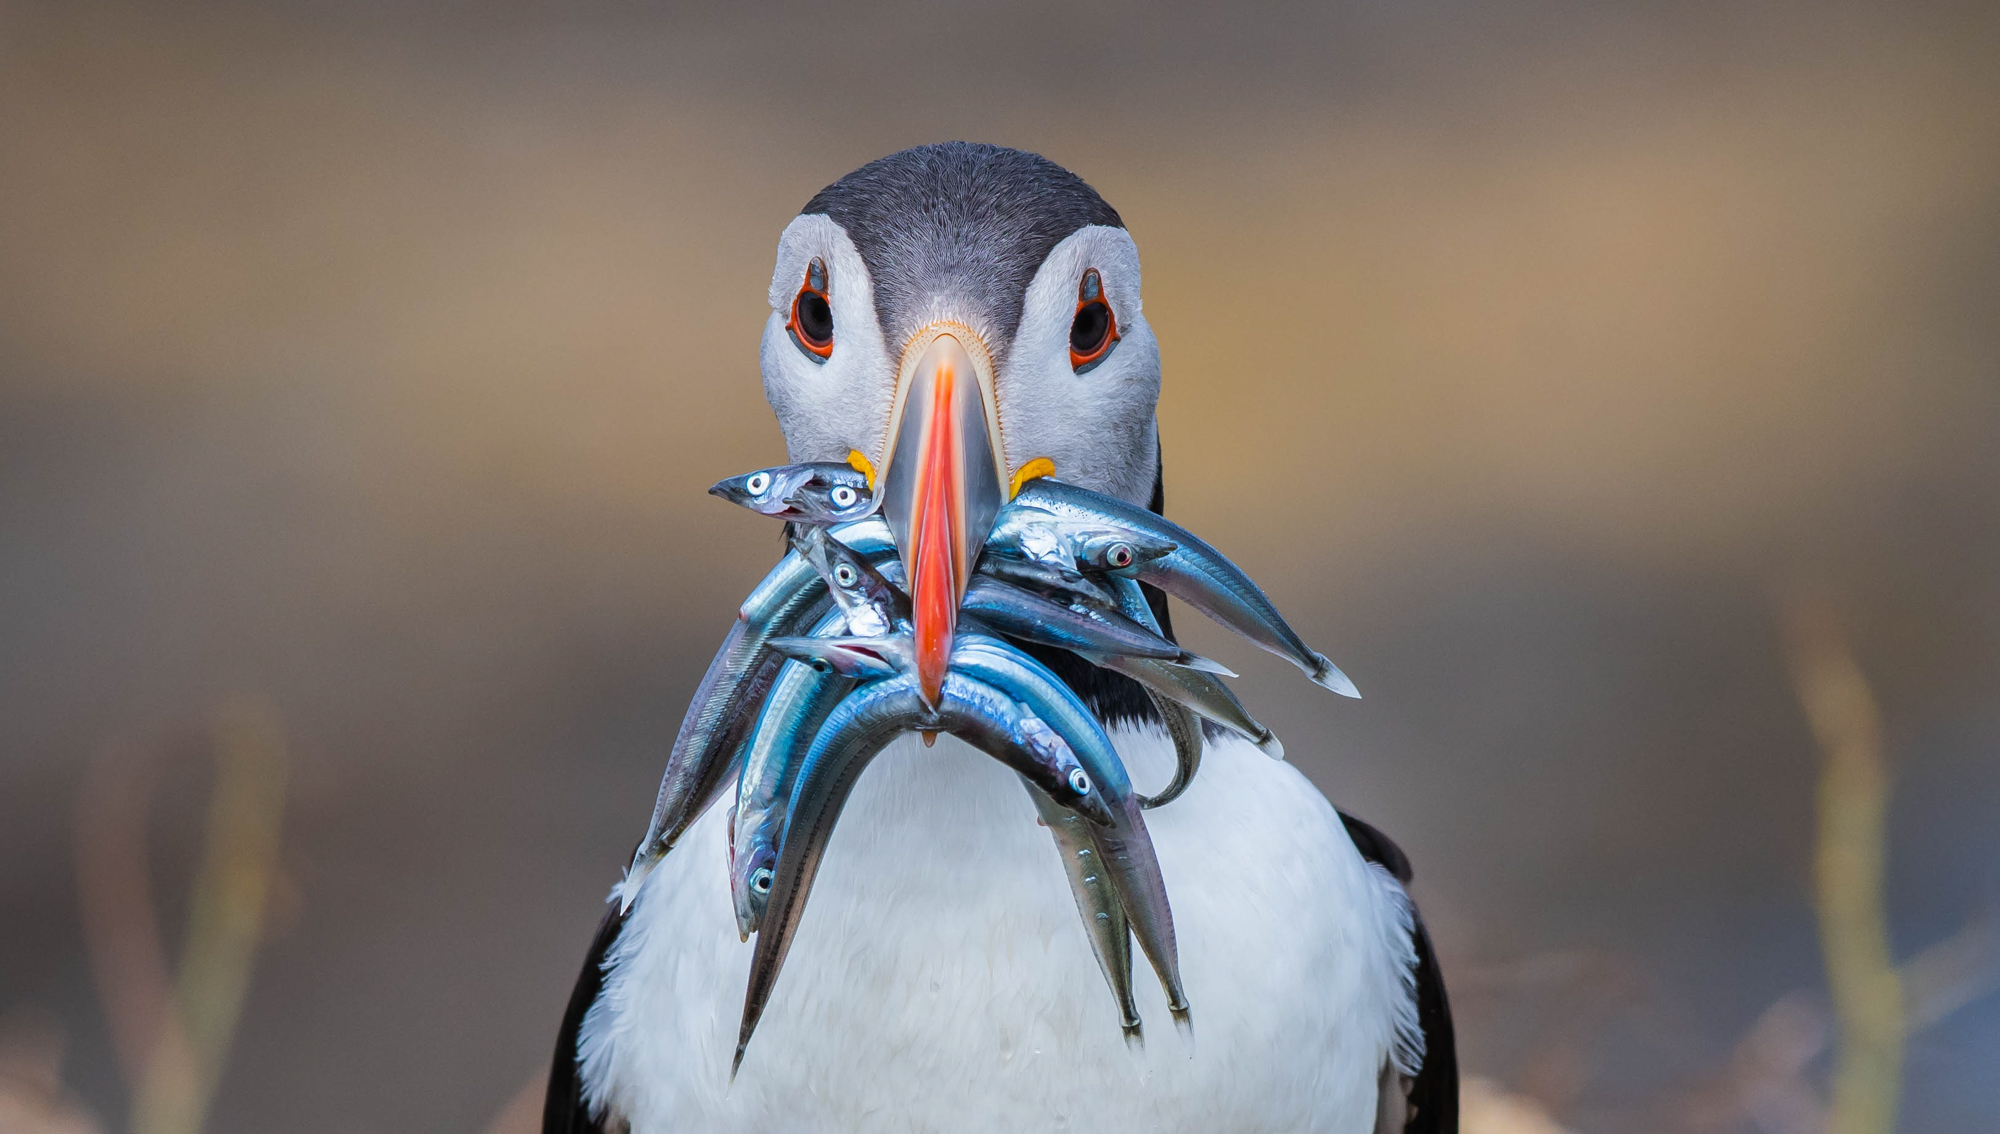 Zoomed in portrait view of a puffin.